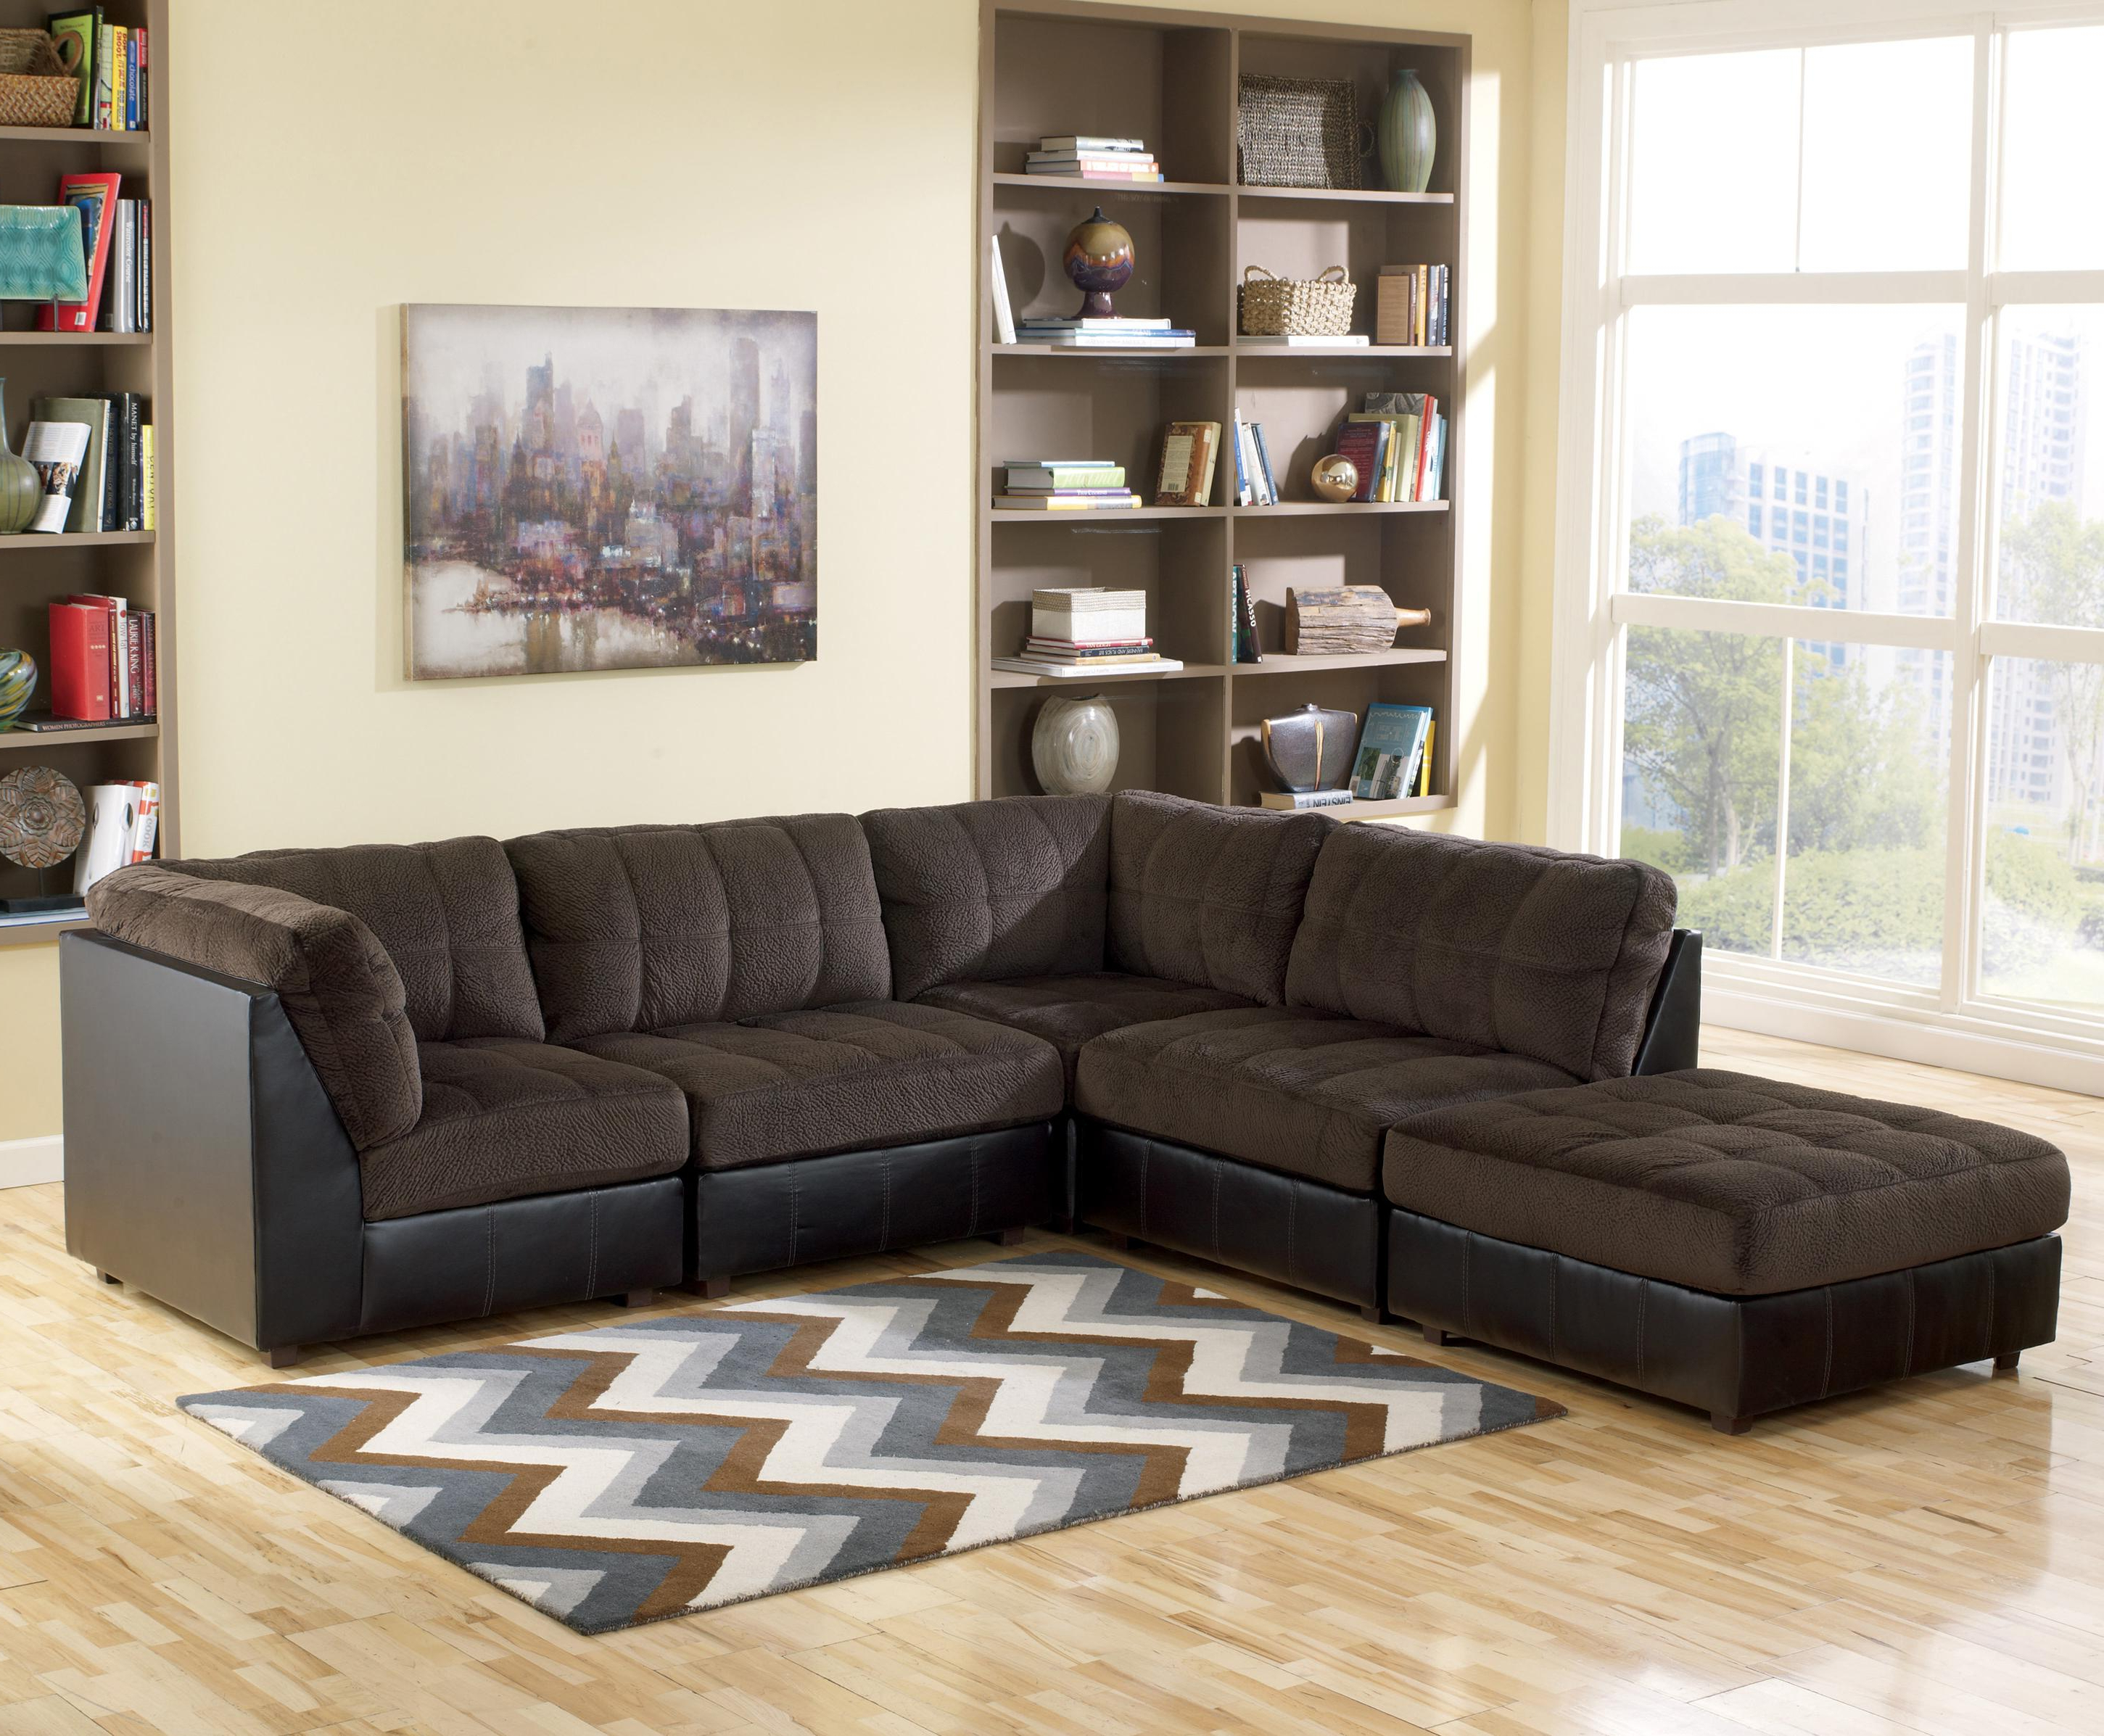 Signature Designashley Hobokin – Chocolate Contemporary 5 Piece Intended For Most Recently Released Norfolk Chocolate 3 Piece Sectionals With Raf Chaise (Gallery 16 of 20)